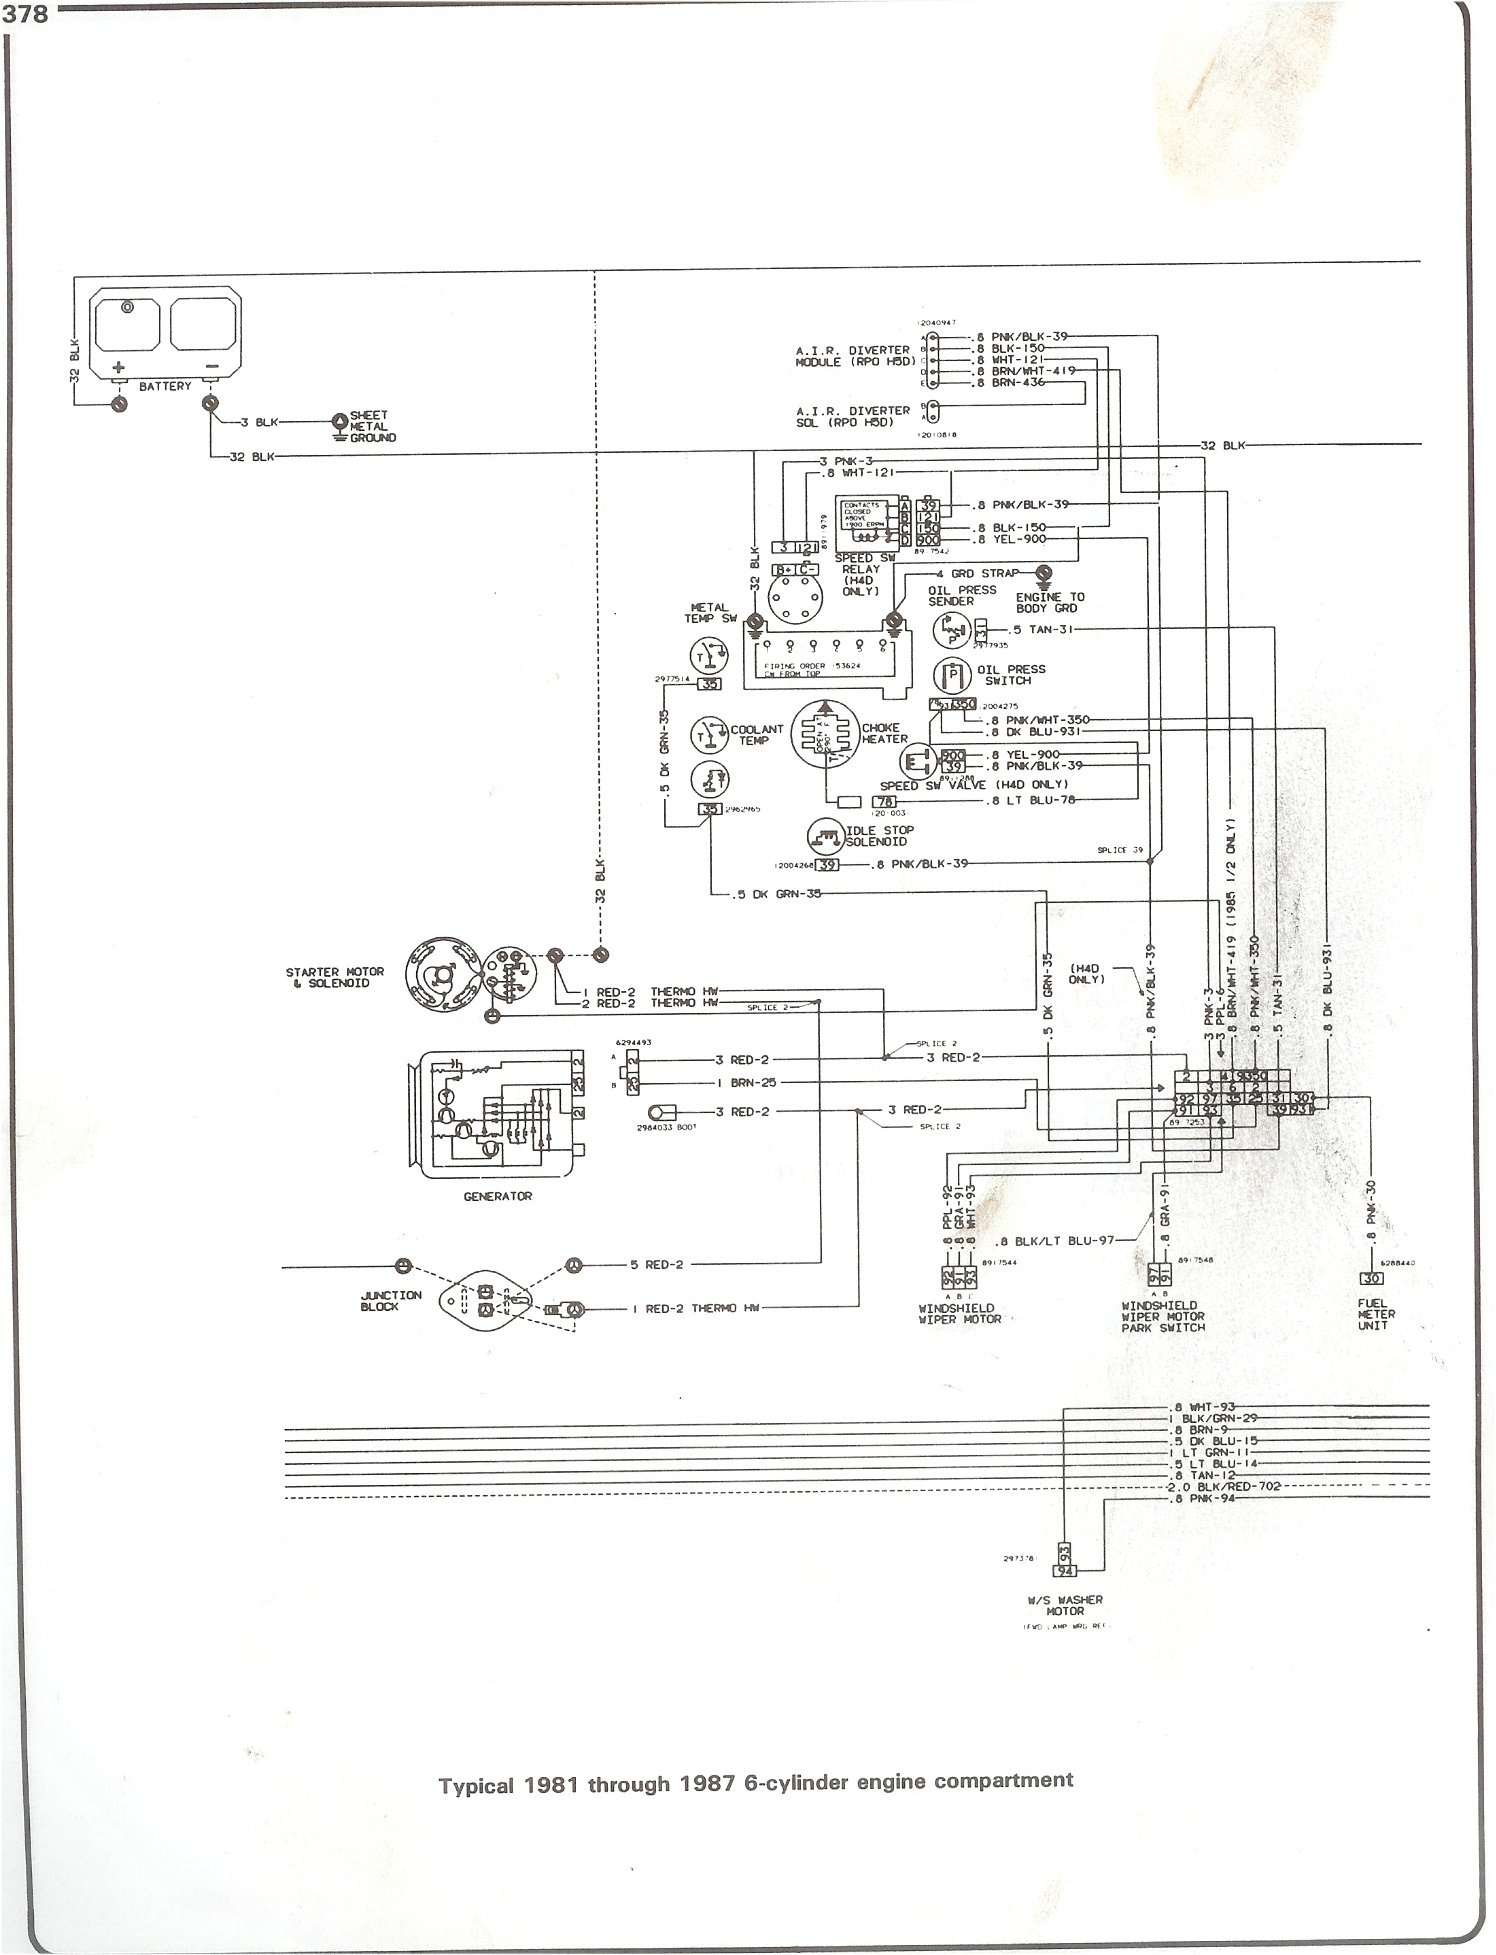 K30 Wiring Diagram Browse Data Directv Swm Diagrams 85 Chevy C10 Engine Touch Electric Motor Complete 73 87